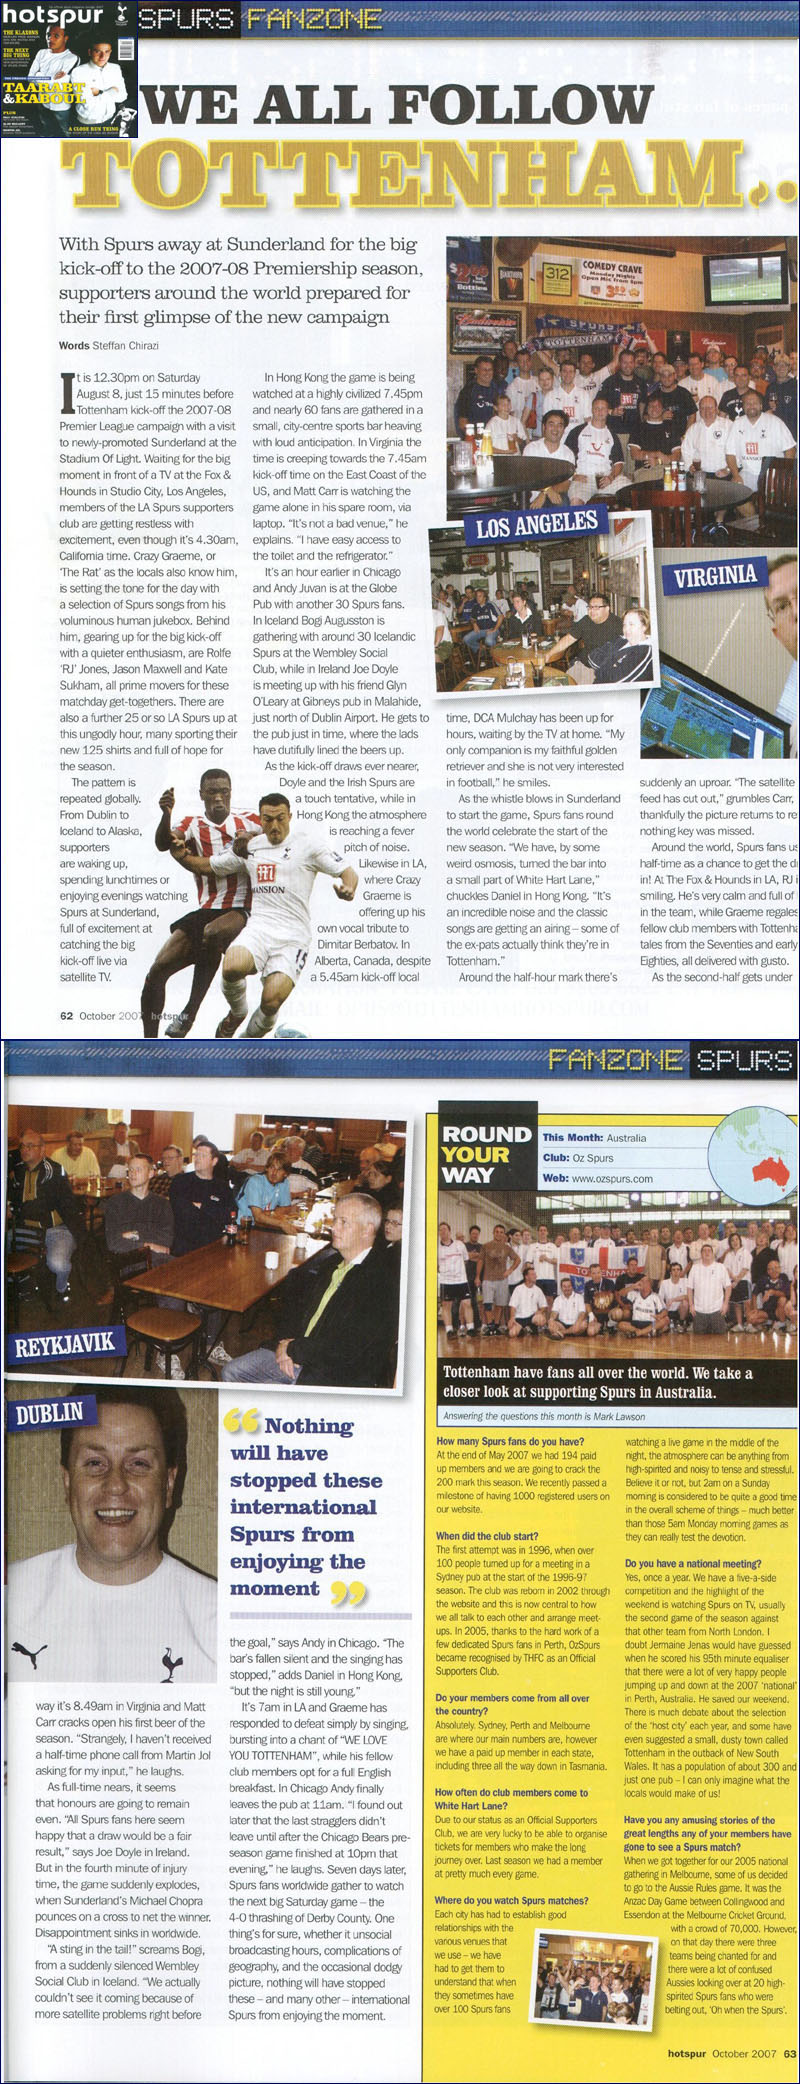 L.A. Spurs in October 2007 issue of Hotspur Magazine (Editor-In-Chief, Chris Hunt). Words by Steffan Chirazi of San Francisco Spurs.